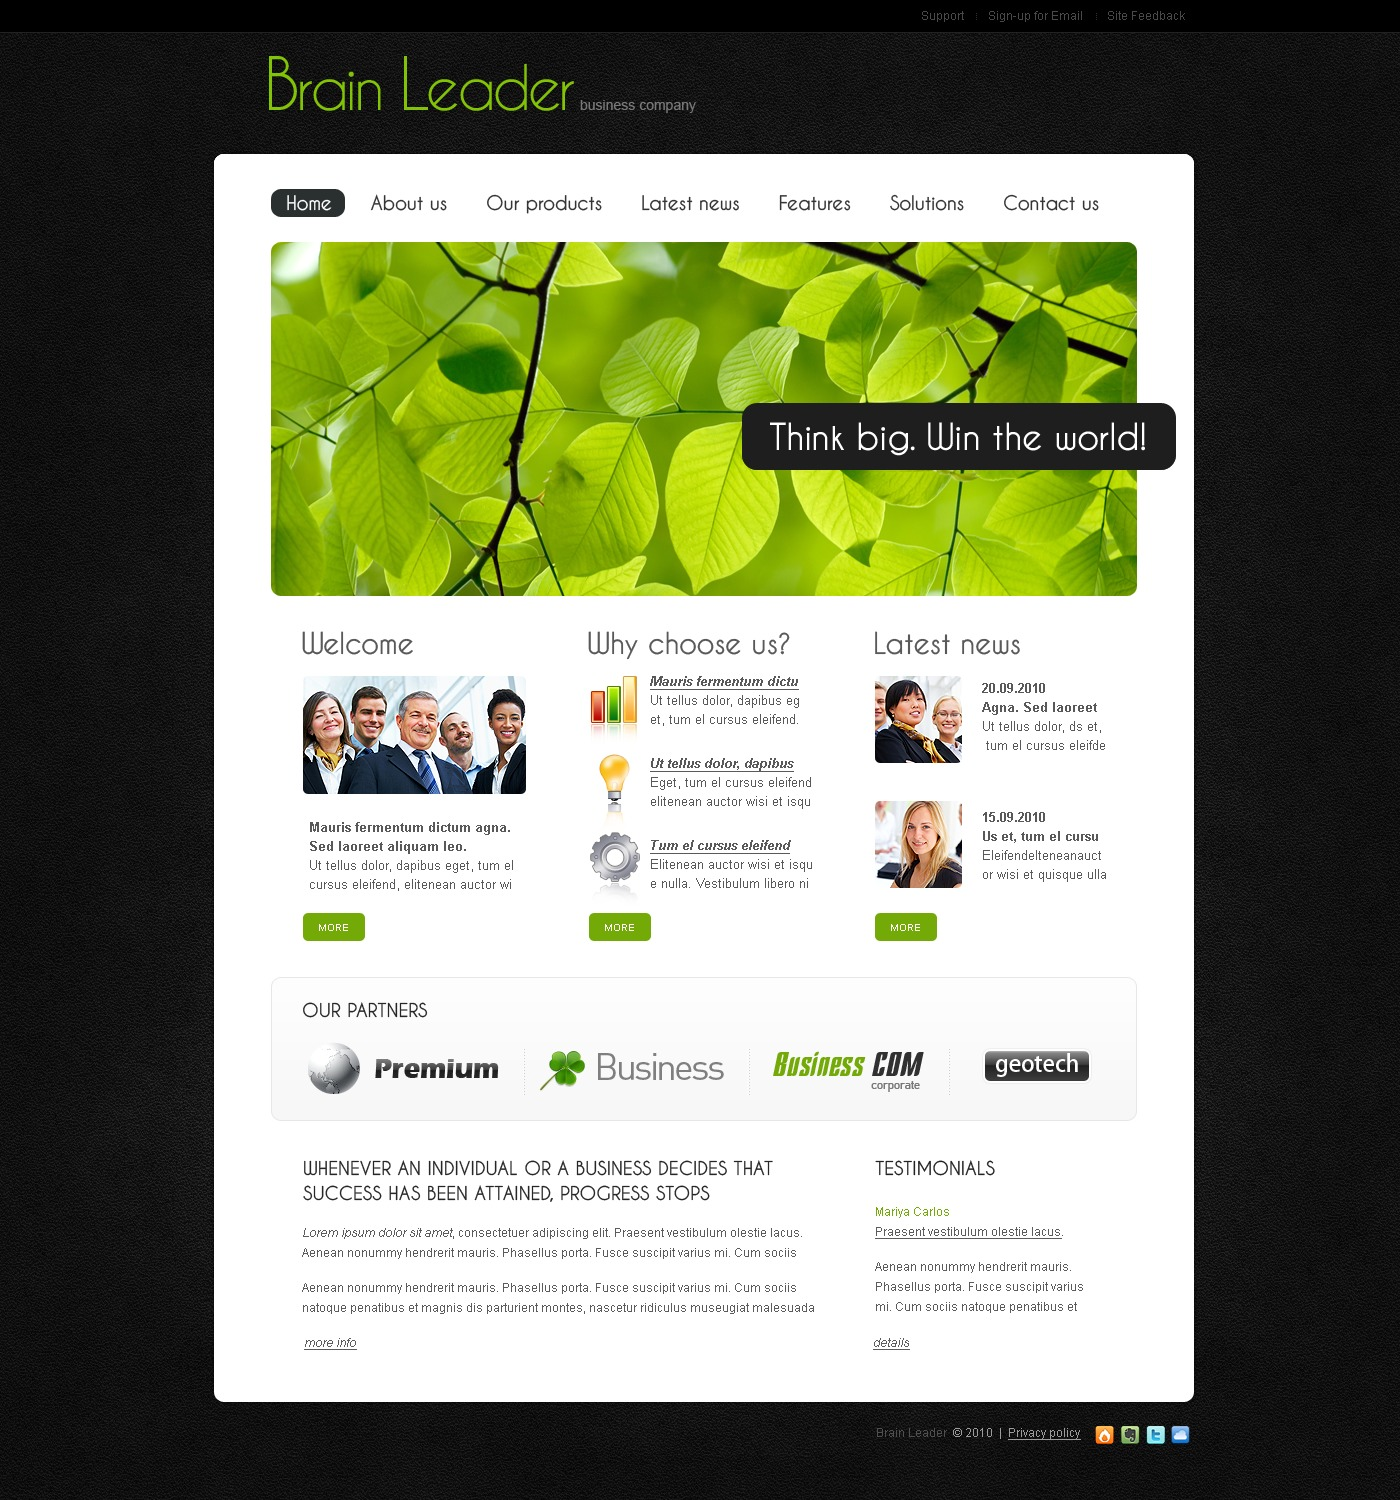 The Brain Leader Business Company PSD Design 54066, one of the best PSD templates of its kind (business, wide), also known as Brain Leader business company PSD template, corporate solutions PSD template, innovations PSD template, contacts PSD template, service PSD template, support PSD template, information dealer PSD template, stocks PSD template, team PSD template, success PSD template, money PSD template, marketing PSD template, director PSD template, manager PSD template, analytics PSD template, planning PSD template, limited PSD template, office PSD template, sales and related with Brain Leader business company, corporate solutions, innovations, contacts, service, support, information dealer, stocks, team, success, money, marketing, director, manager, analytics, planning, limited, office, sales, etc.